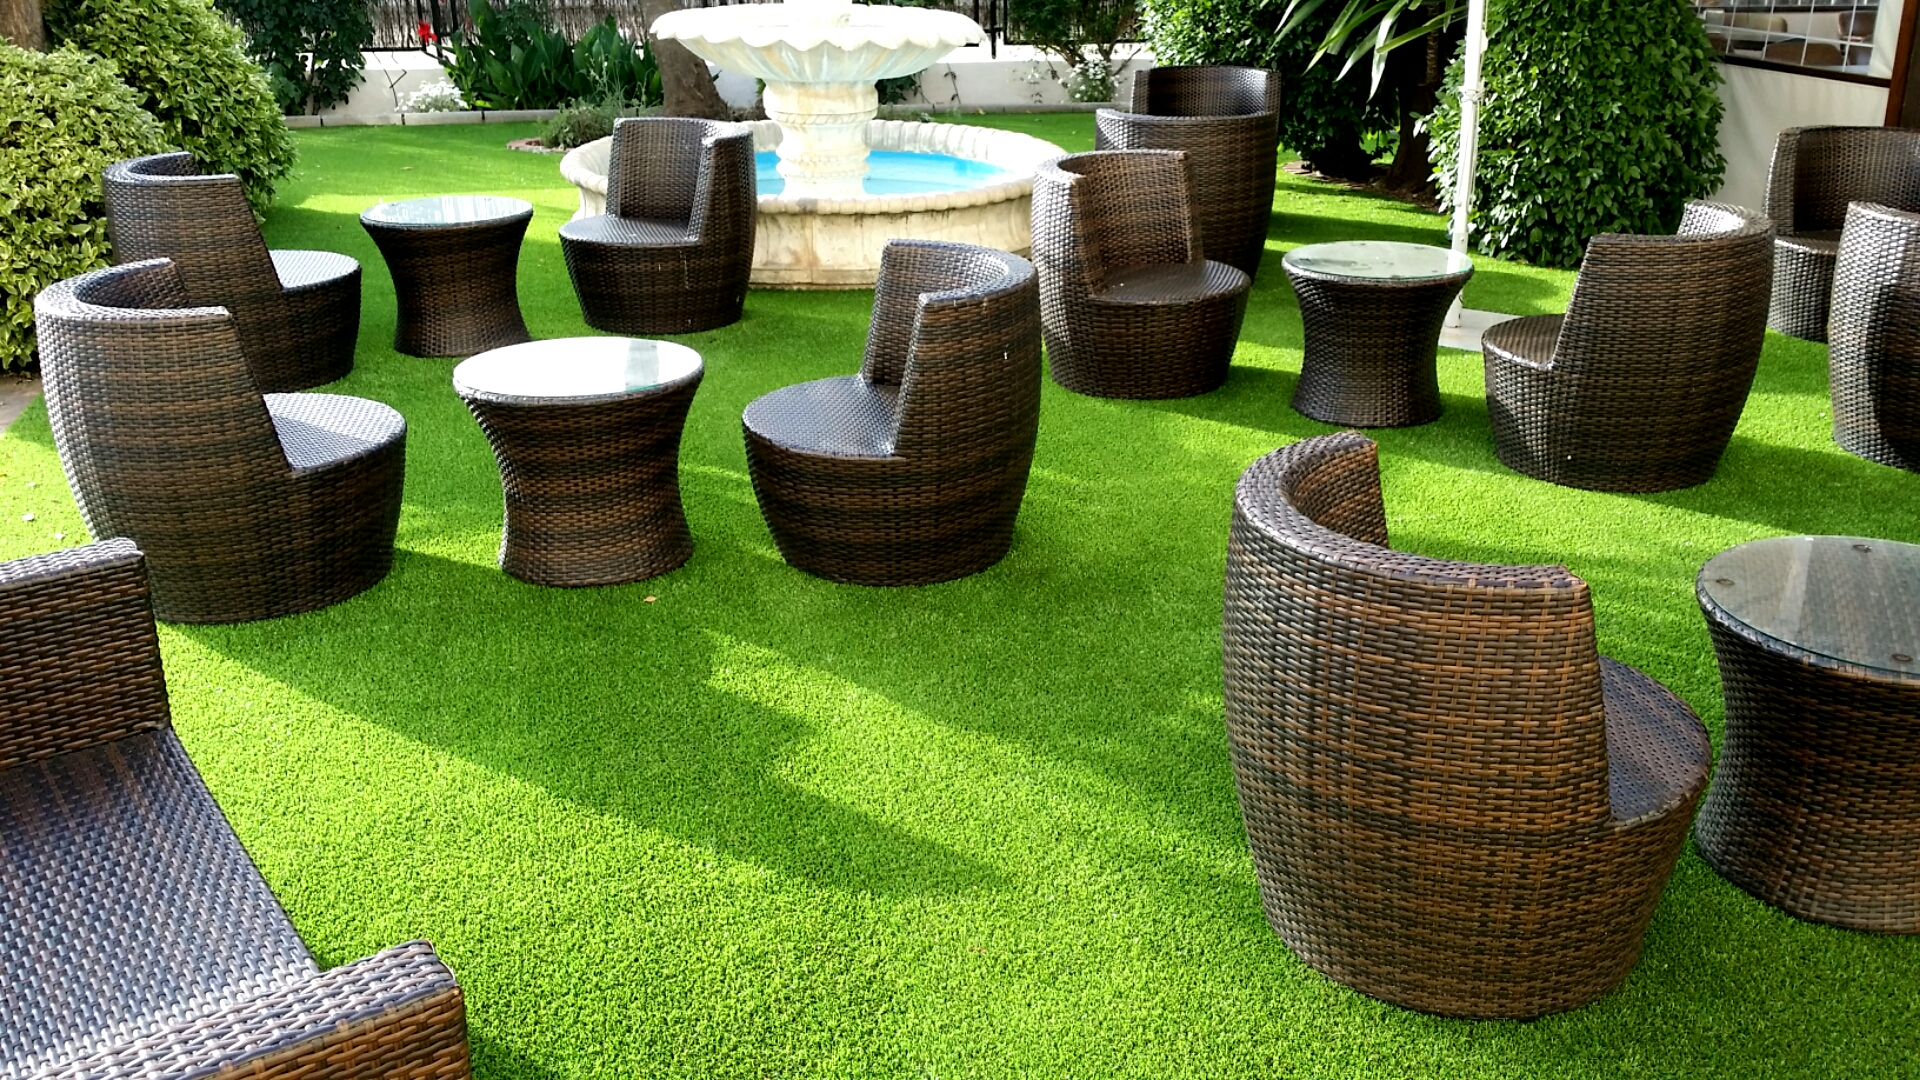 C sped artificial para jard n playlawn for Cesped para jardin